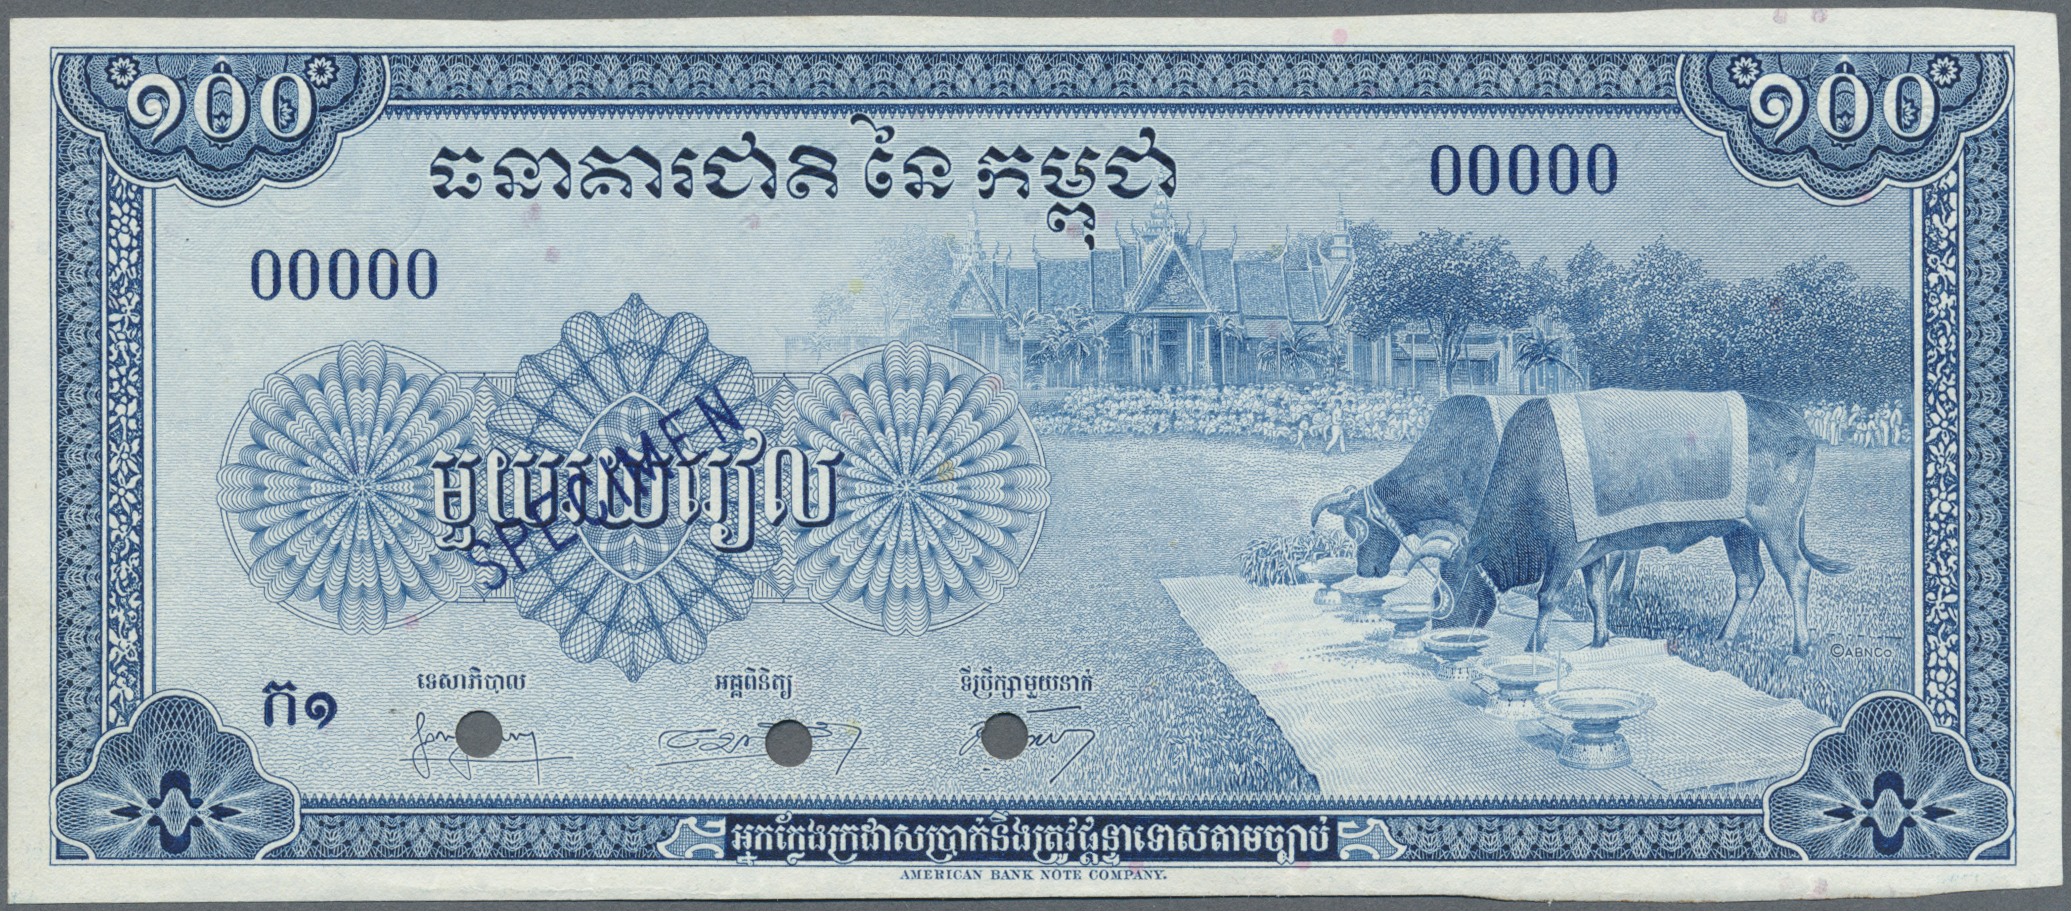 Lot 338 - Cambodia / Kambodscha | Banknoten  -  Auktionshaus Christoph Gärtner GmbH & Co. KG Banknotes Worldwide Auction #39 Day 1